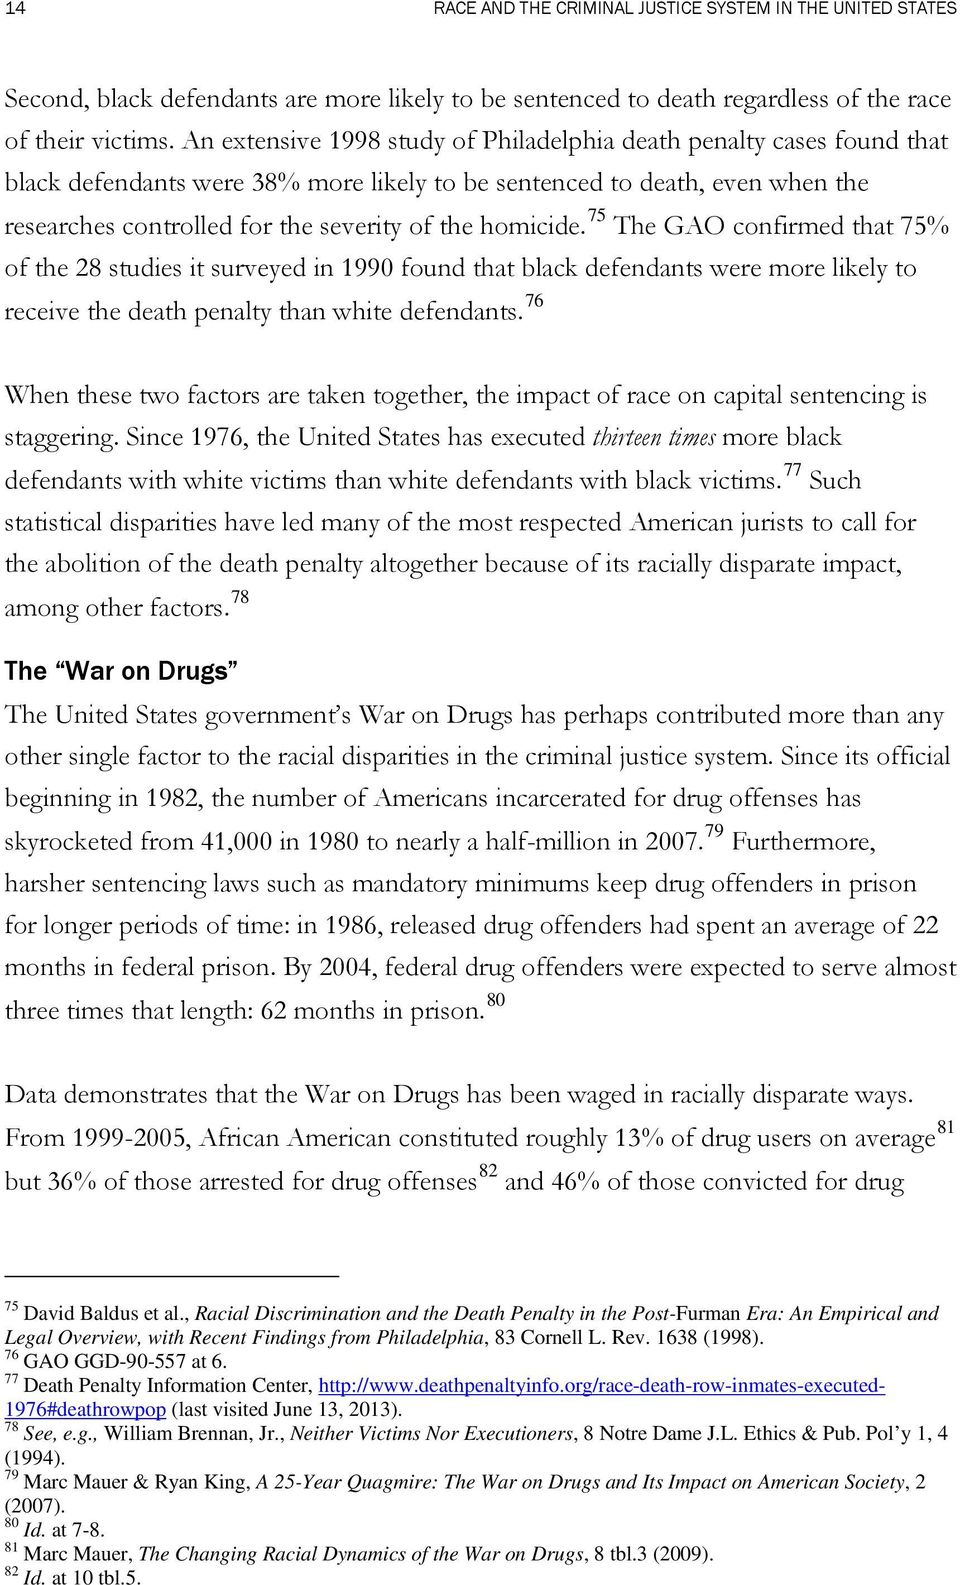 homicide. 75 The GAO confirmed that 75% of the 28 studies it surveyed in 1990 found that black defendants were more likely to receive the death penalty than white defendants.